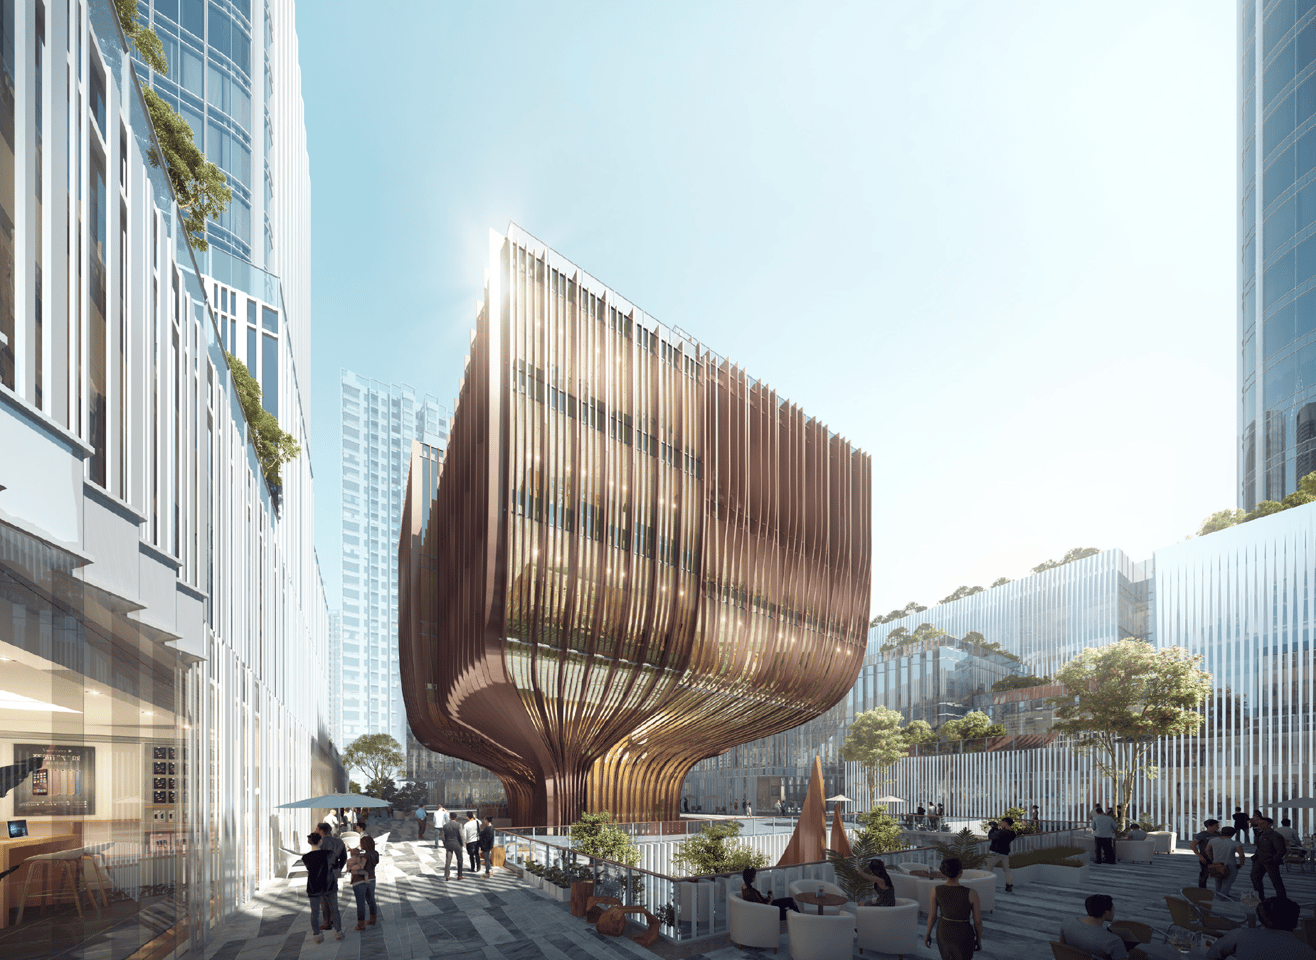 The New Pingshan Eye development will include a green-roofed multipurpose cultural building